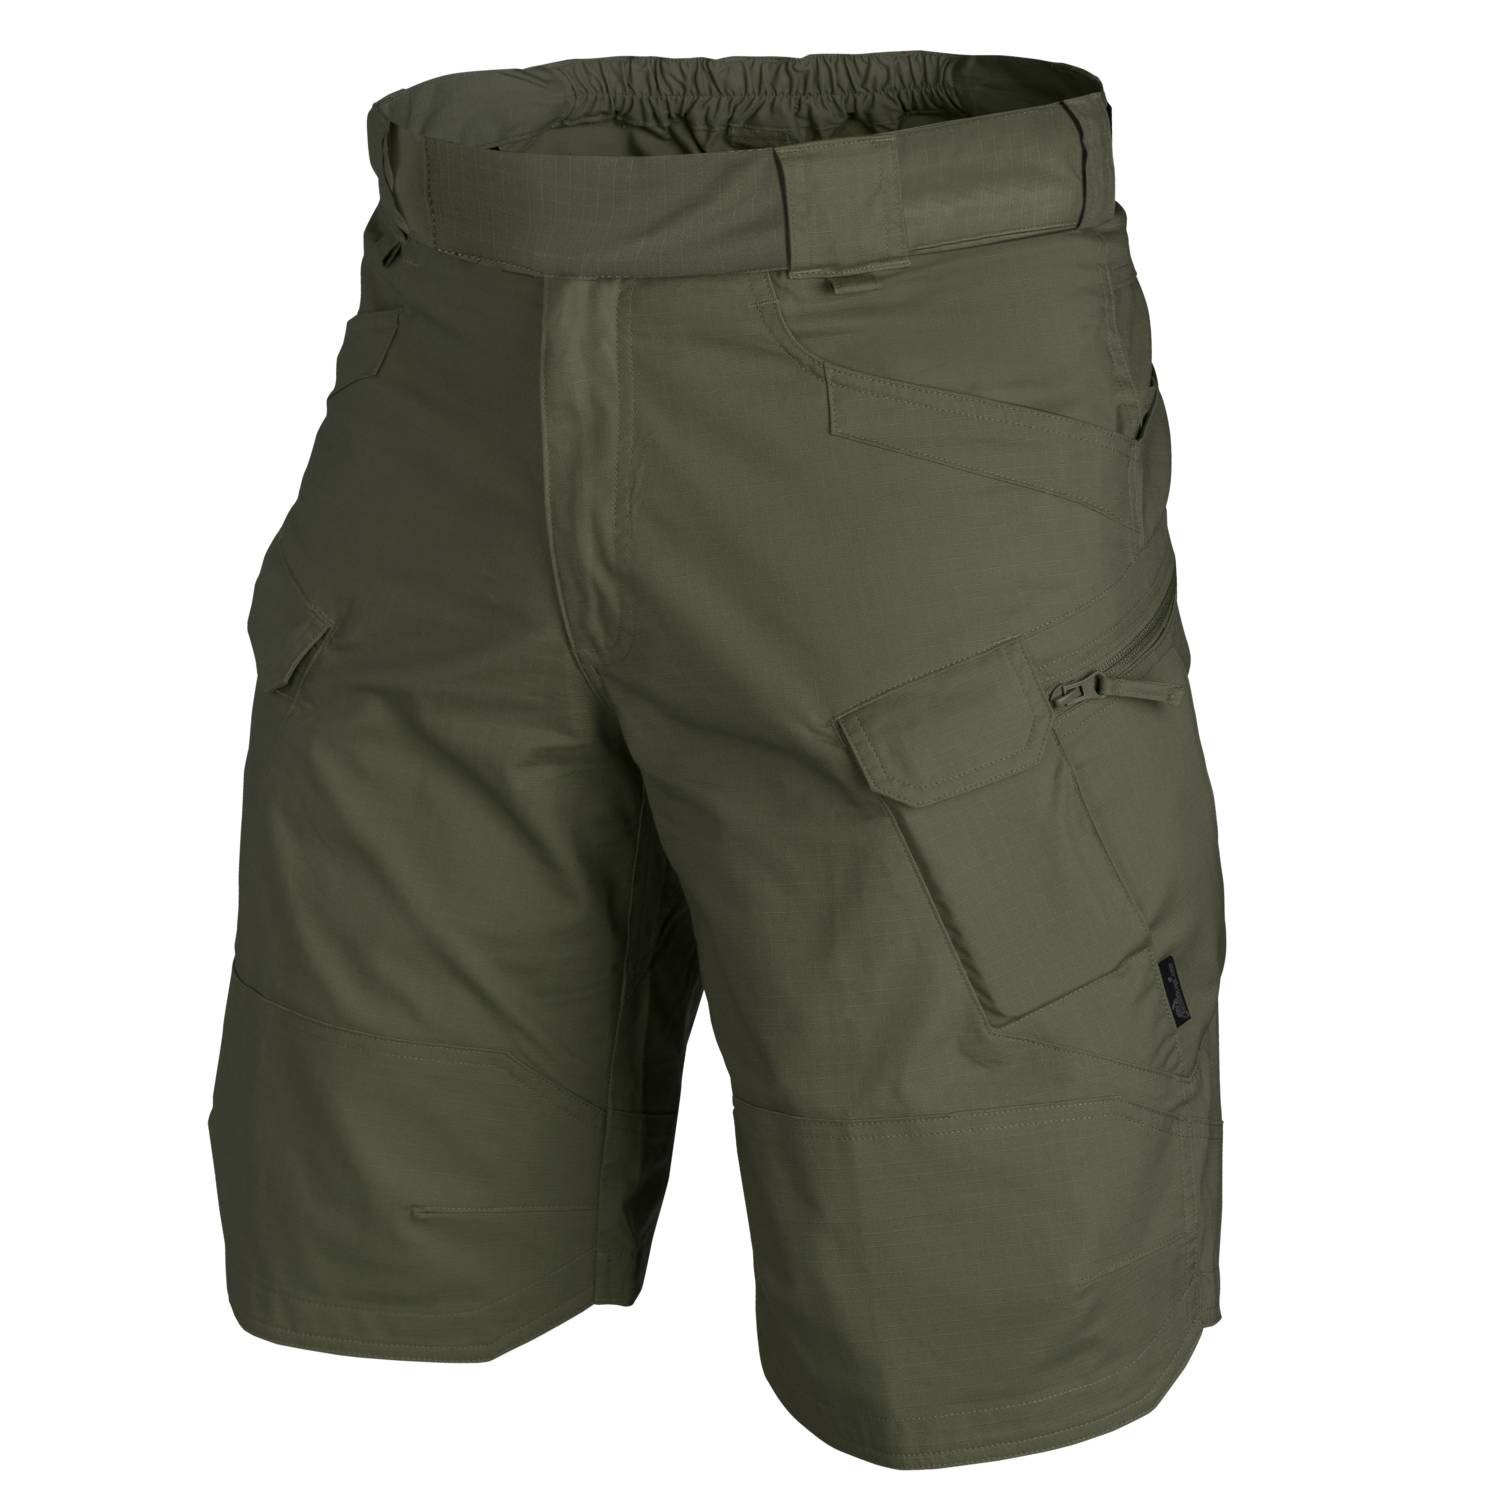 "Kra�asy URBAN TACTICAL 11"" rip-stop OLIVE GREEN - zv�t�it obr�zek"